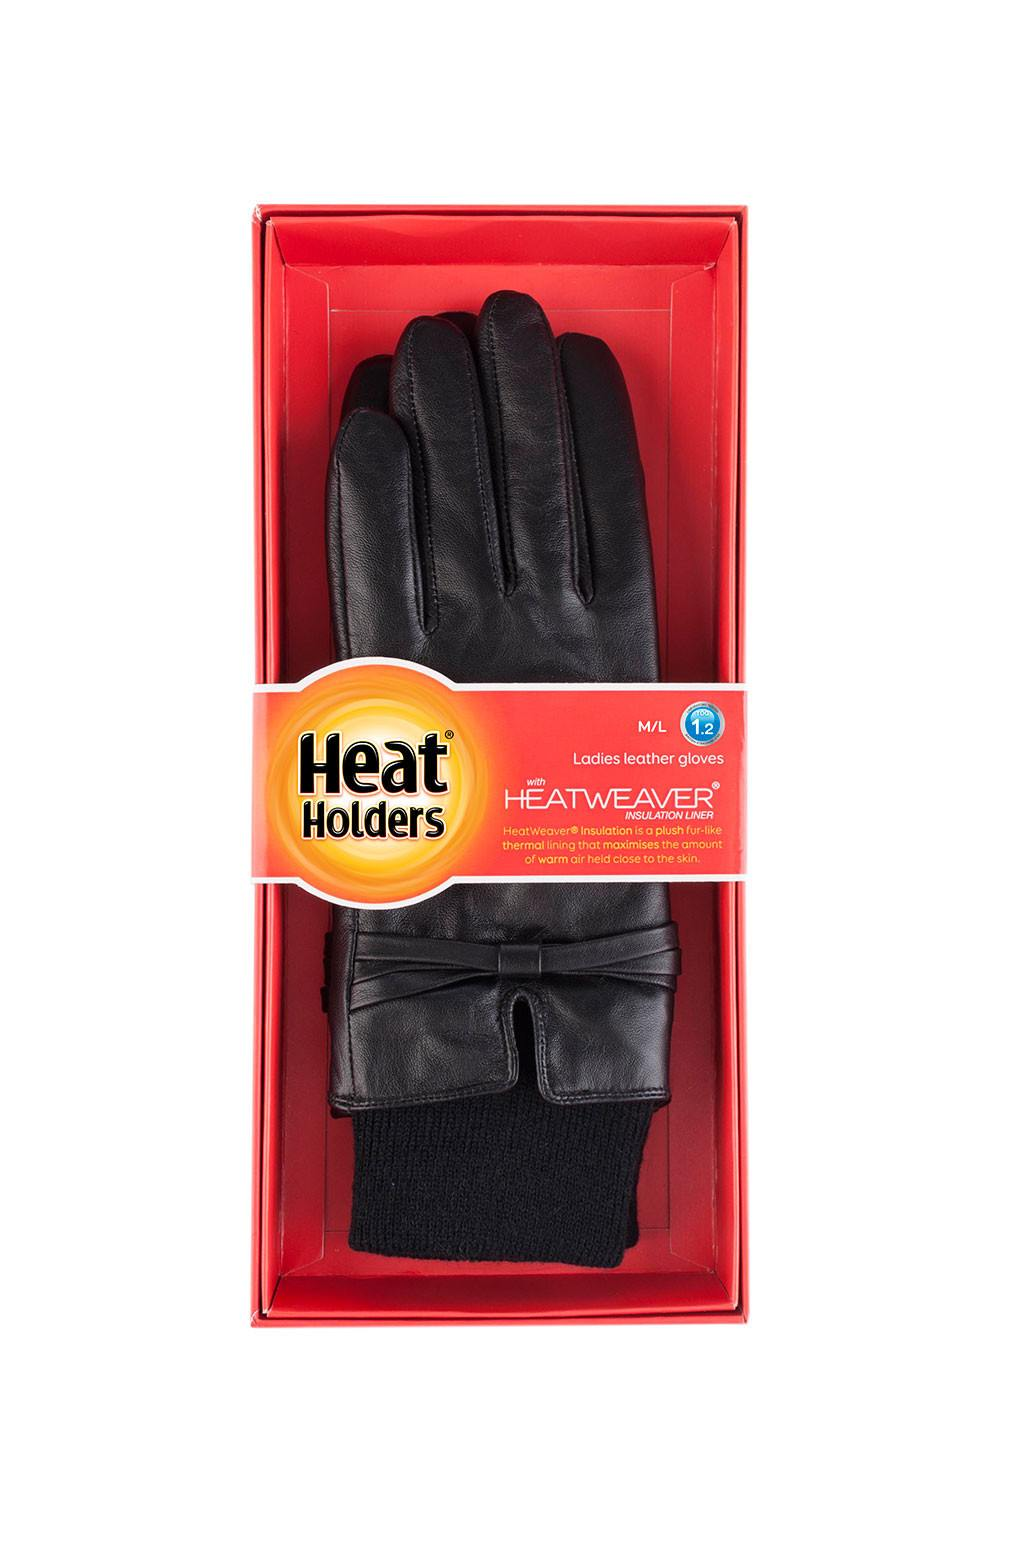 Mens leather gloves at debenhams -  24 99 Ladies Leather Gloves